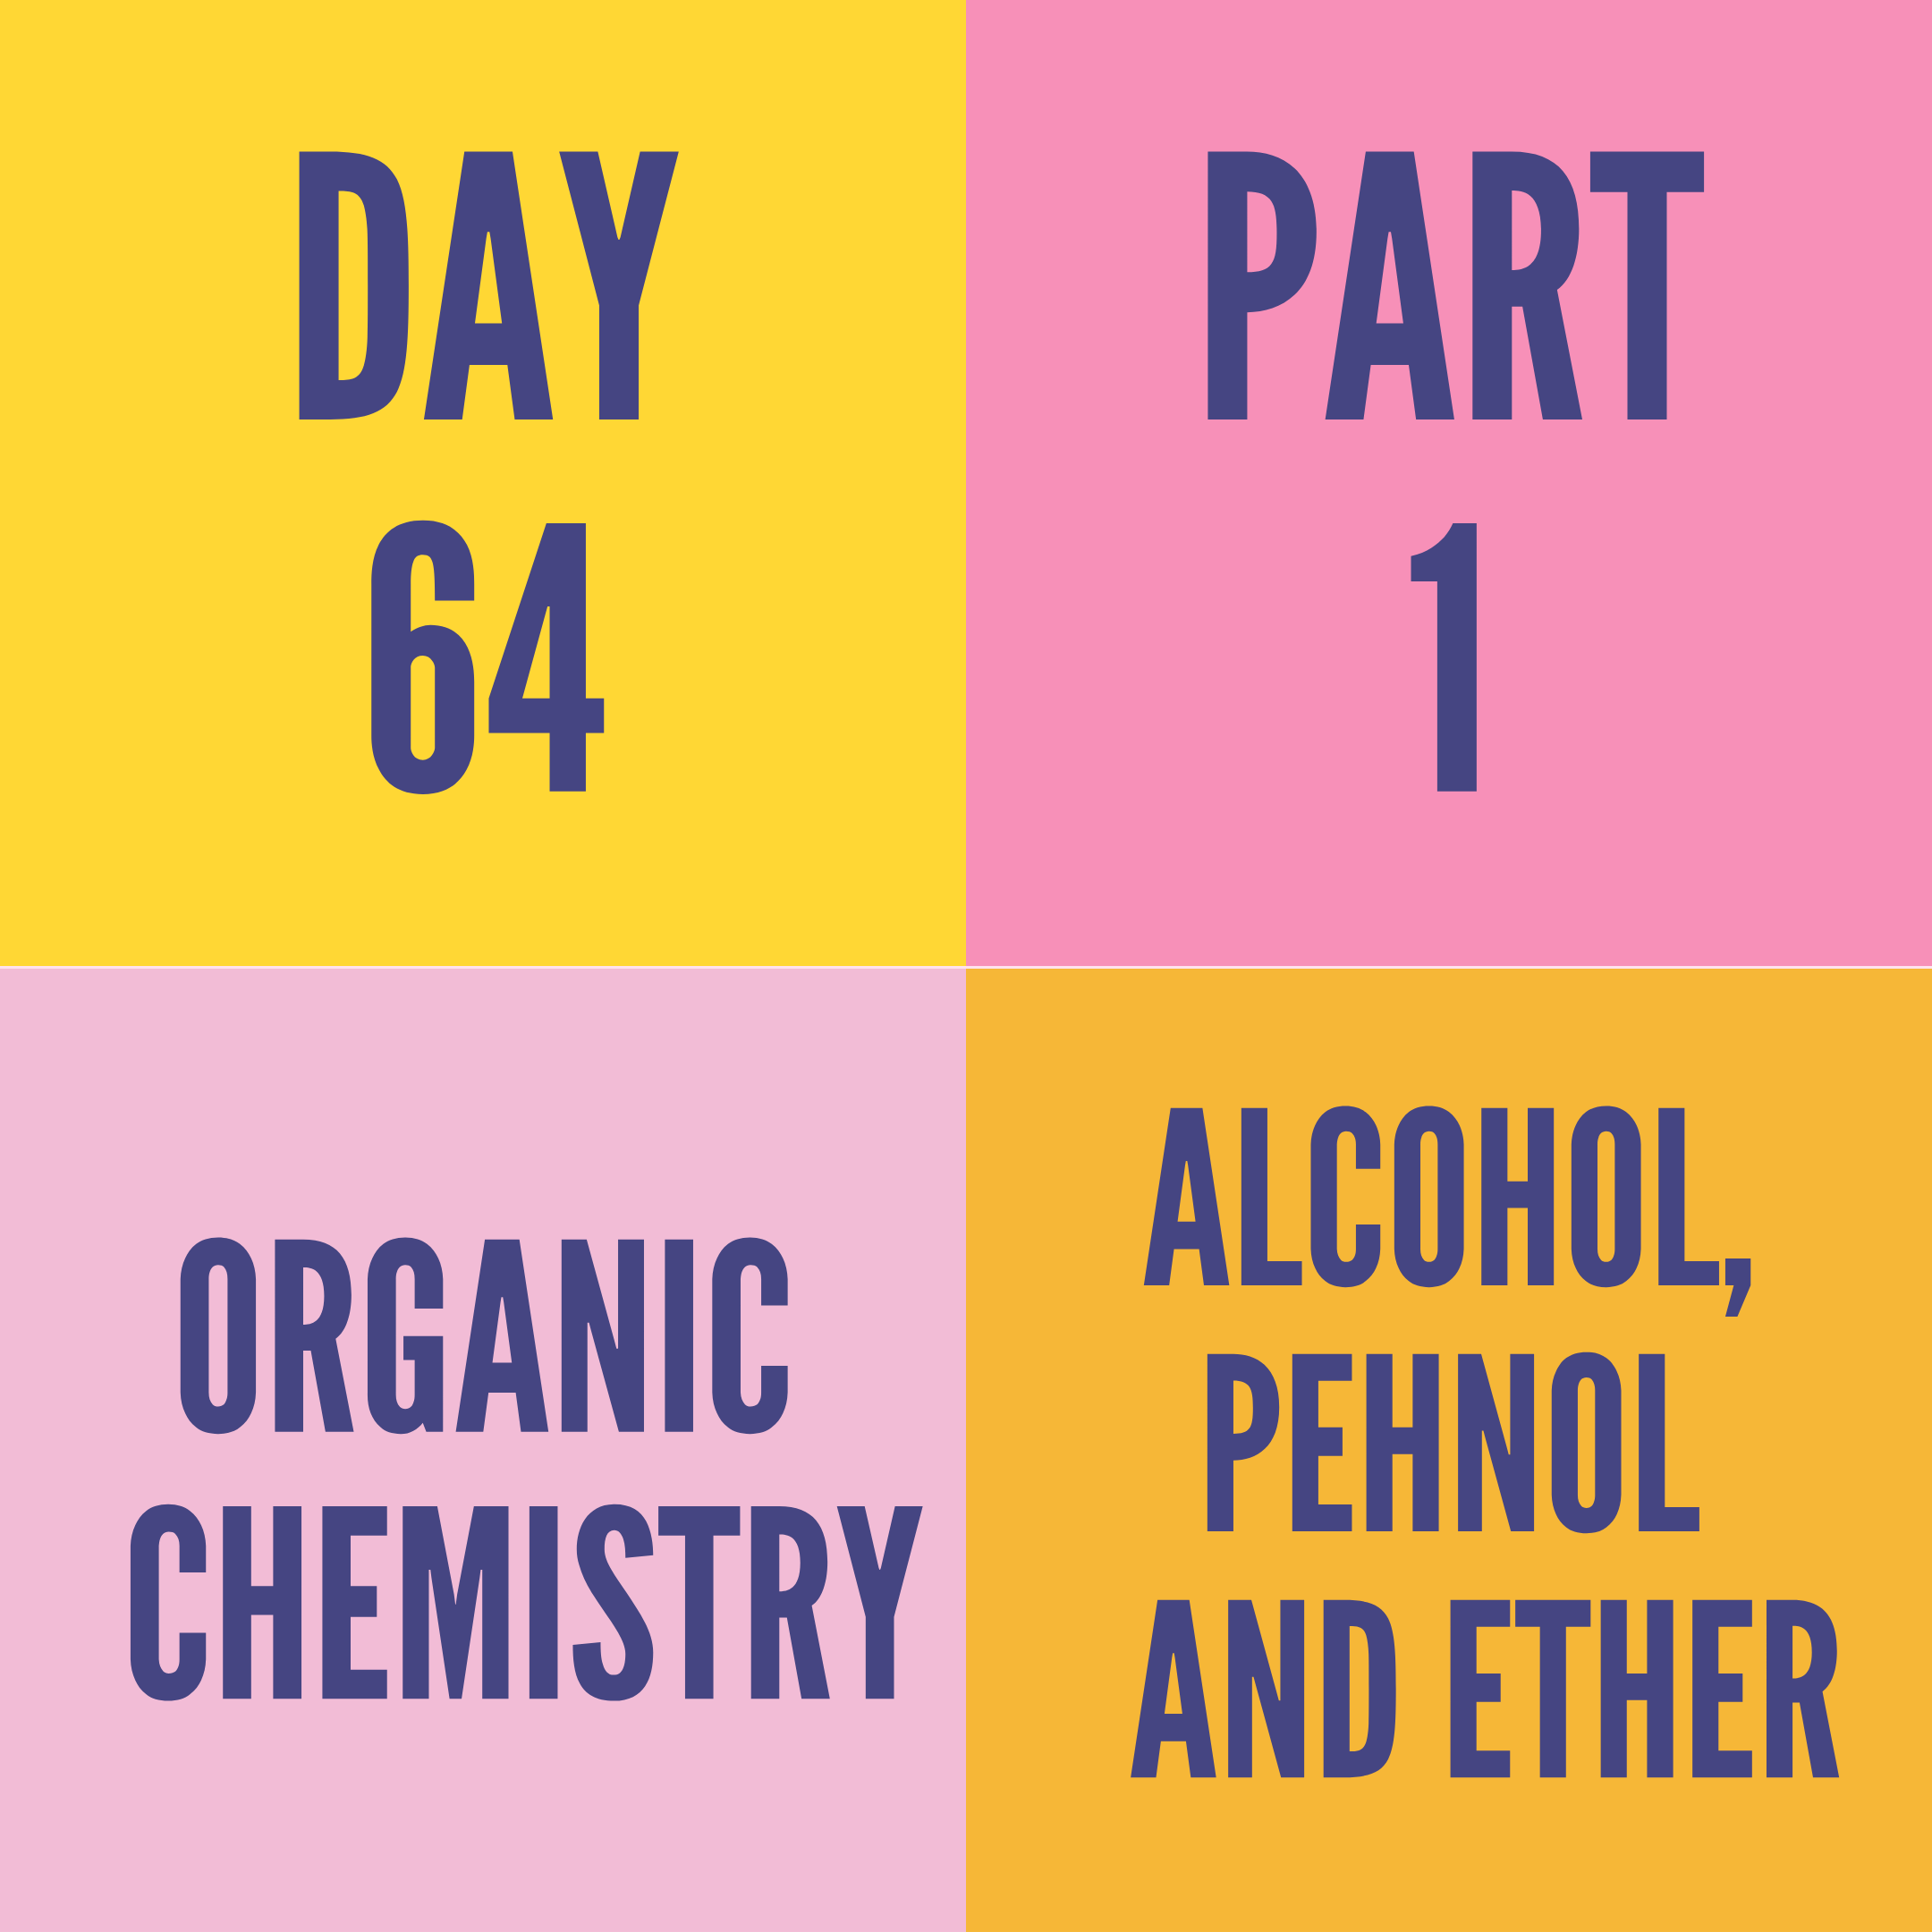 DAY-64 PART-1 ALCOH0L,PEHNOL AND ETHER